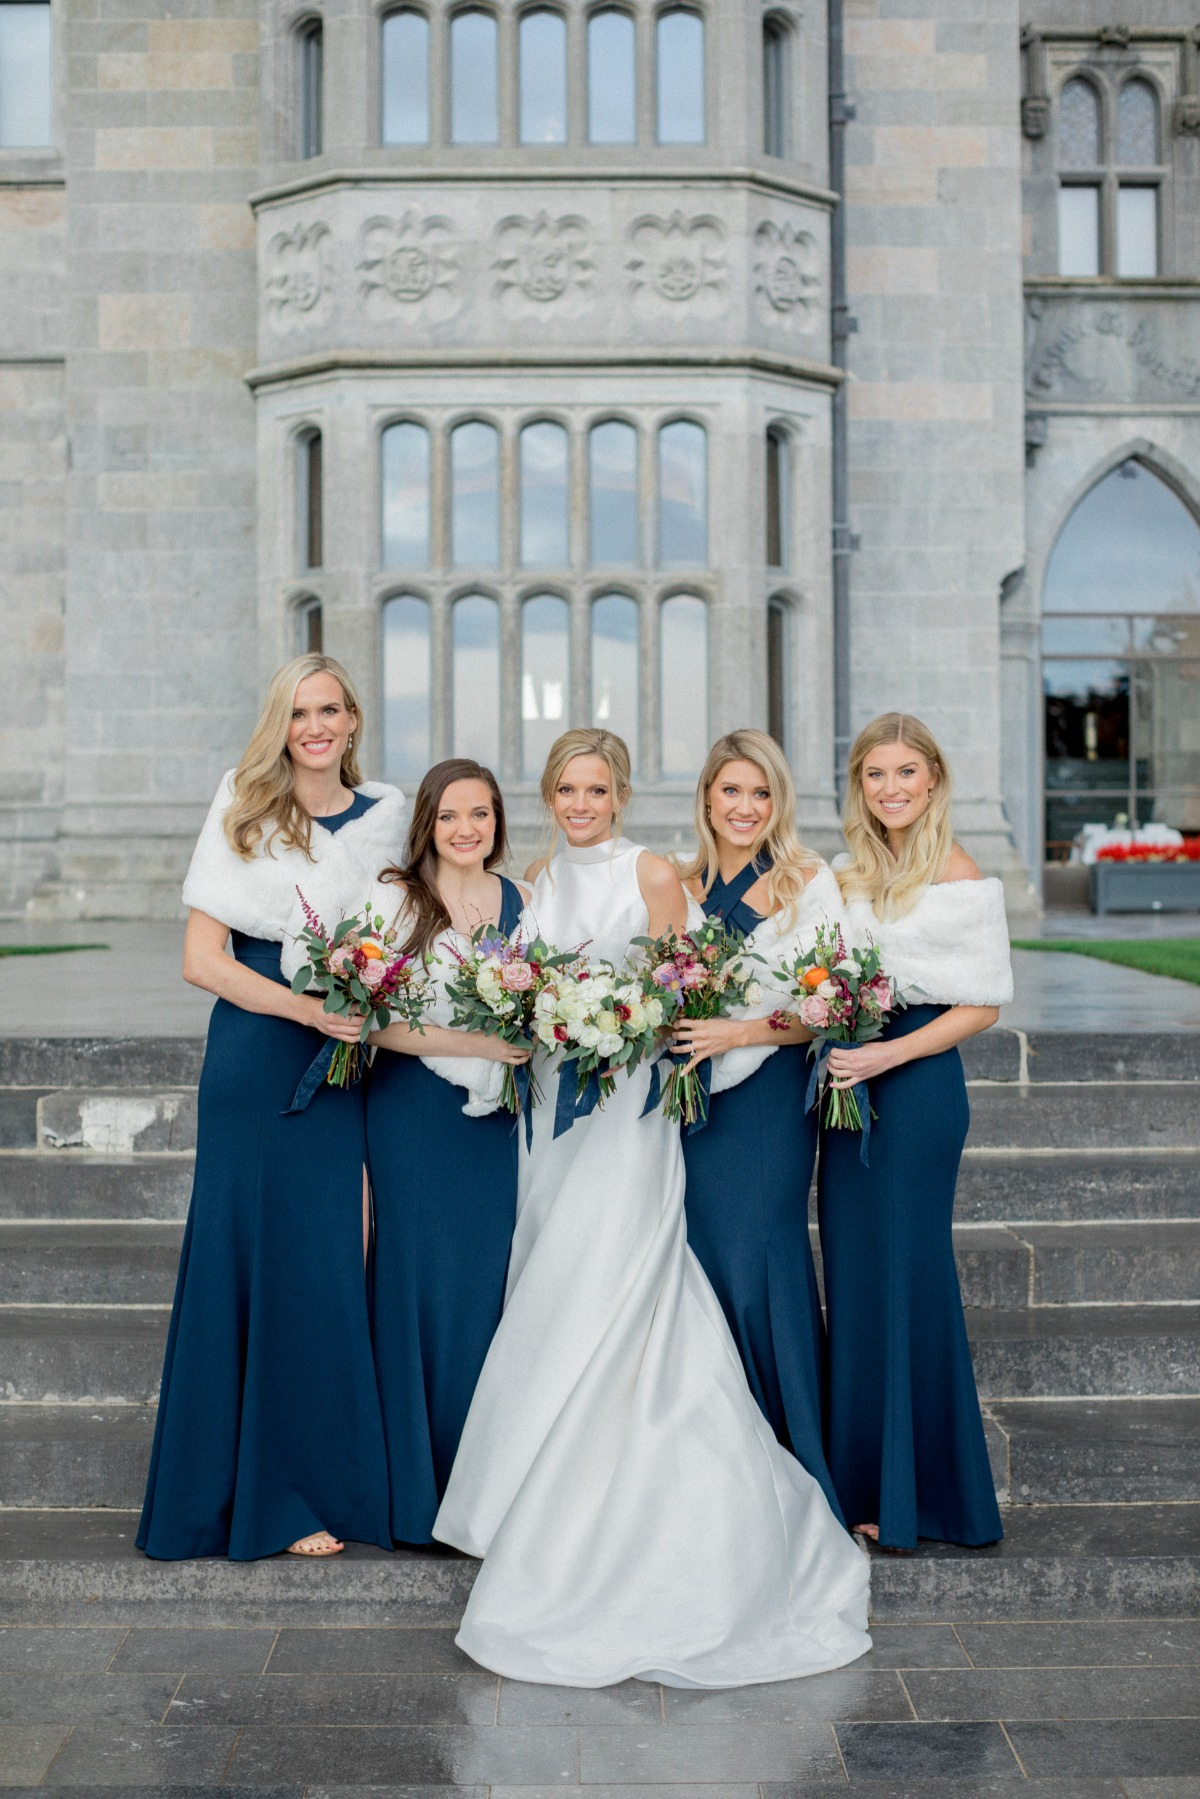 Navy Blue Bridesmaid dresses from Jenny Yoo paired with white fur stoles